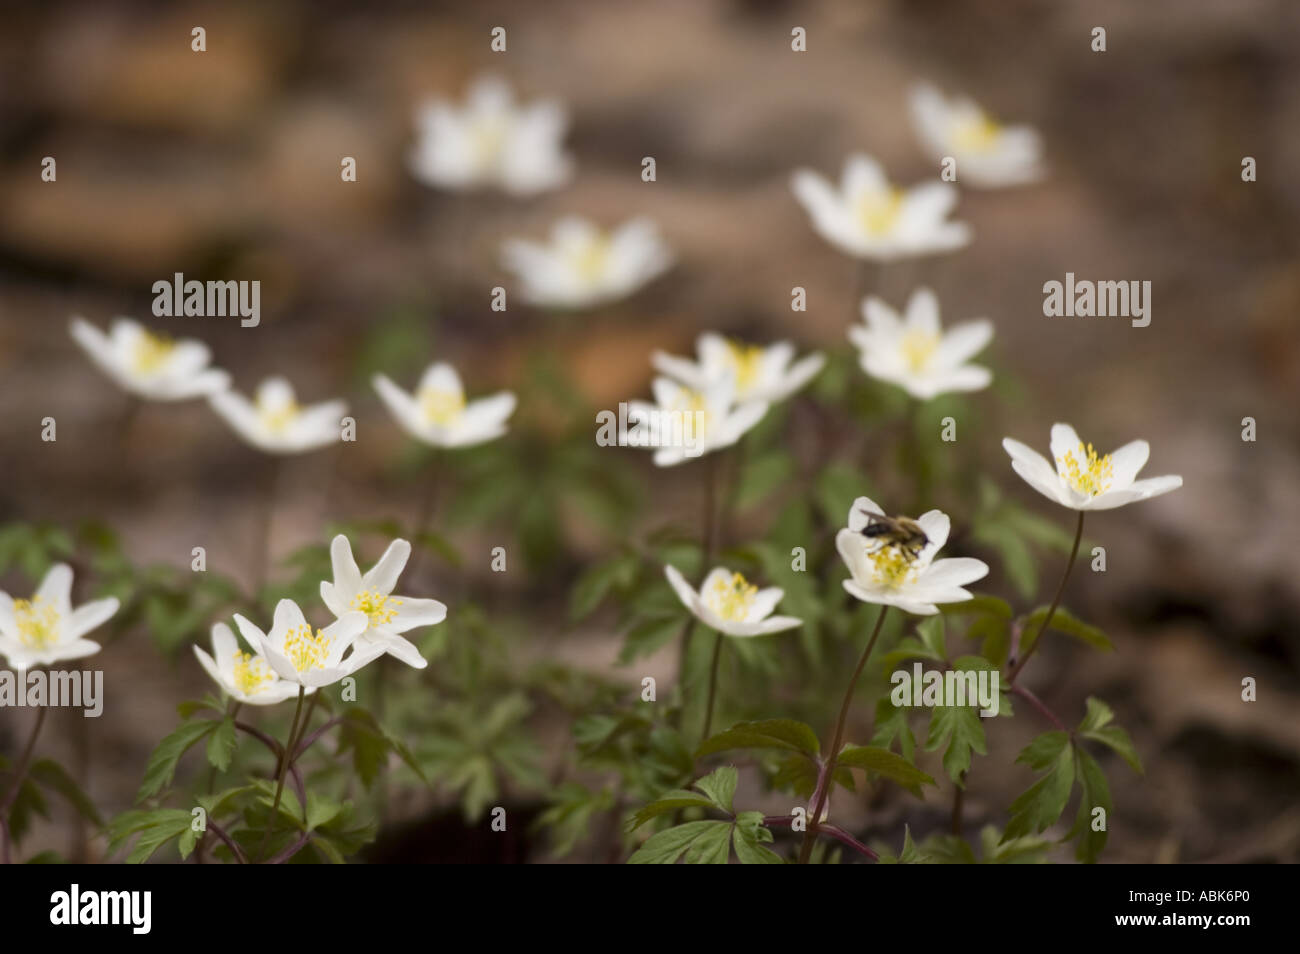 Early Spring White Flowers Of Anemones Grecian Windflower Stock